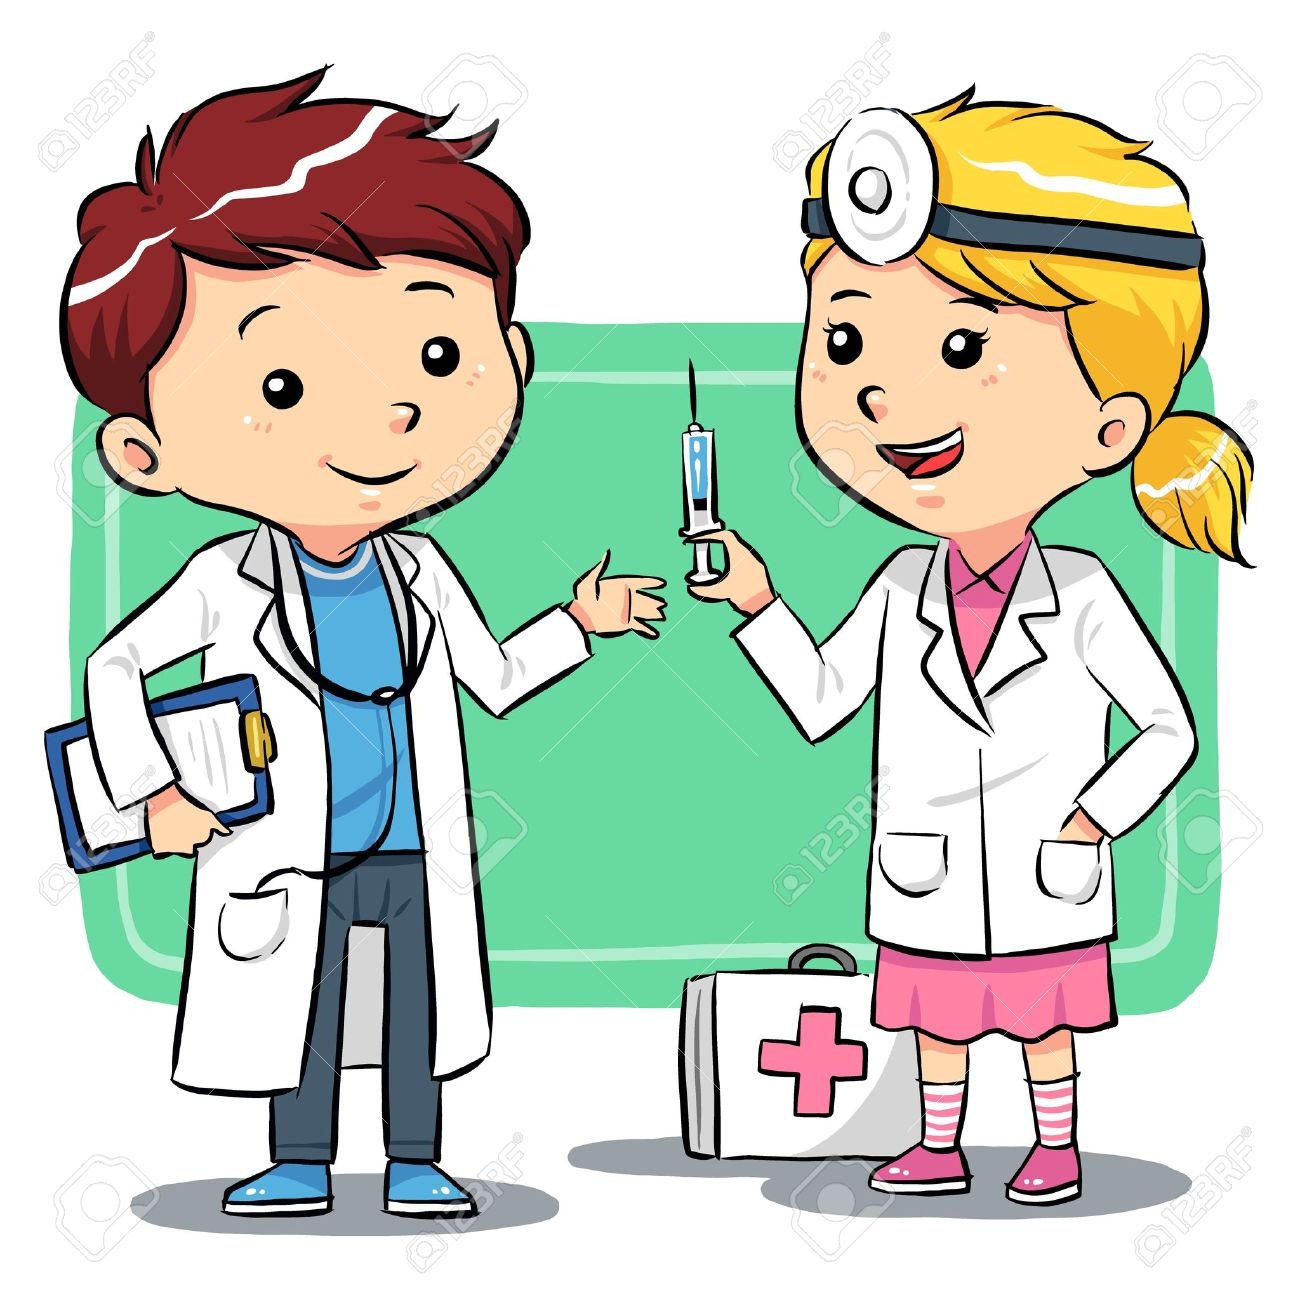 Doctor Kids  Kids playing to be a doctors Stock Vector - 20360756